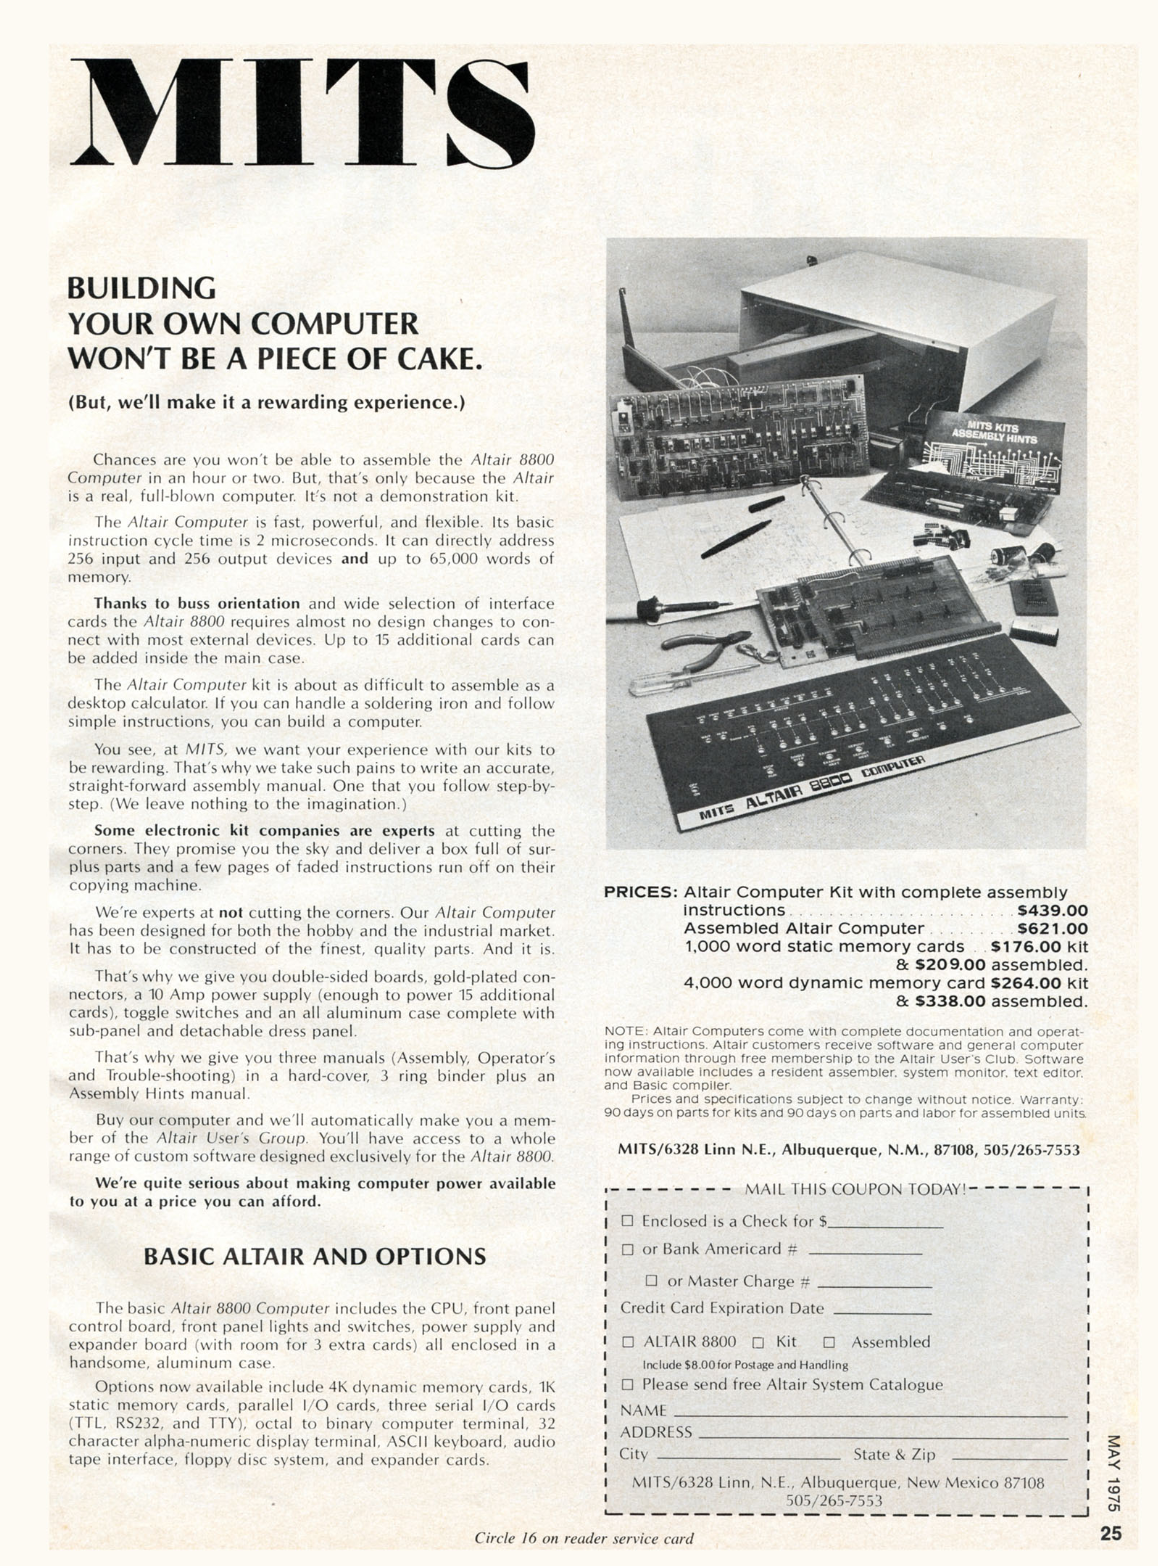 Altair 8800 (1975). Programming Altair using switches was [not an easy task](https://www.slideshare.net/mihai_pruna/a-tutorial-on-programming-the-mits-altair-computer-by-mihai-pruna).